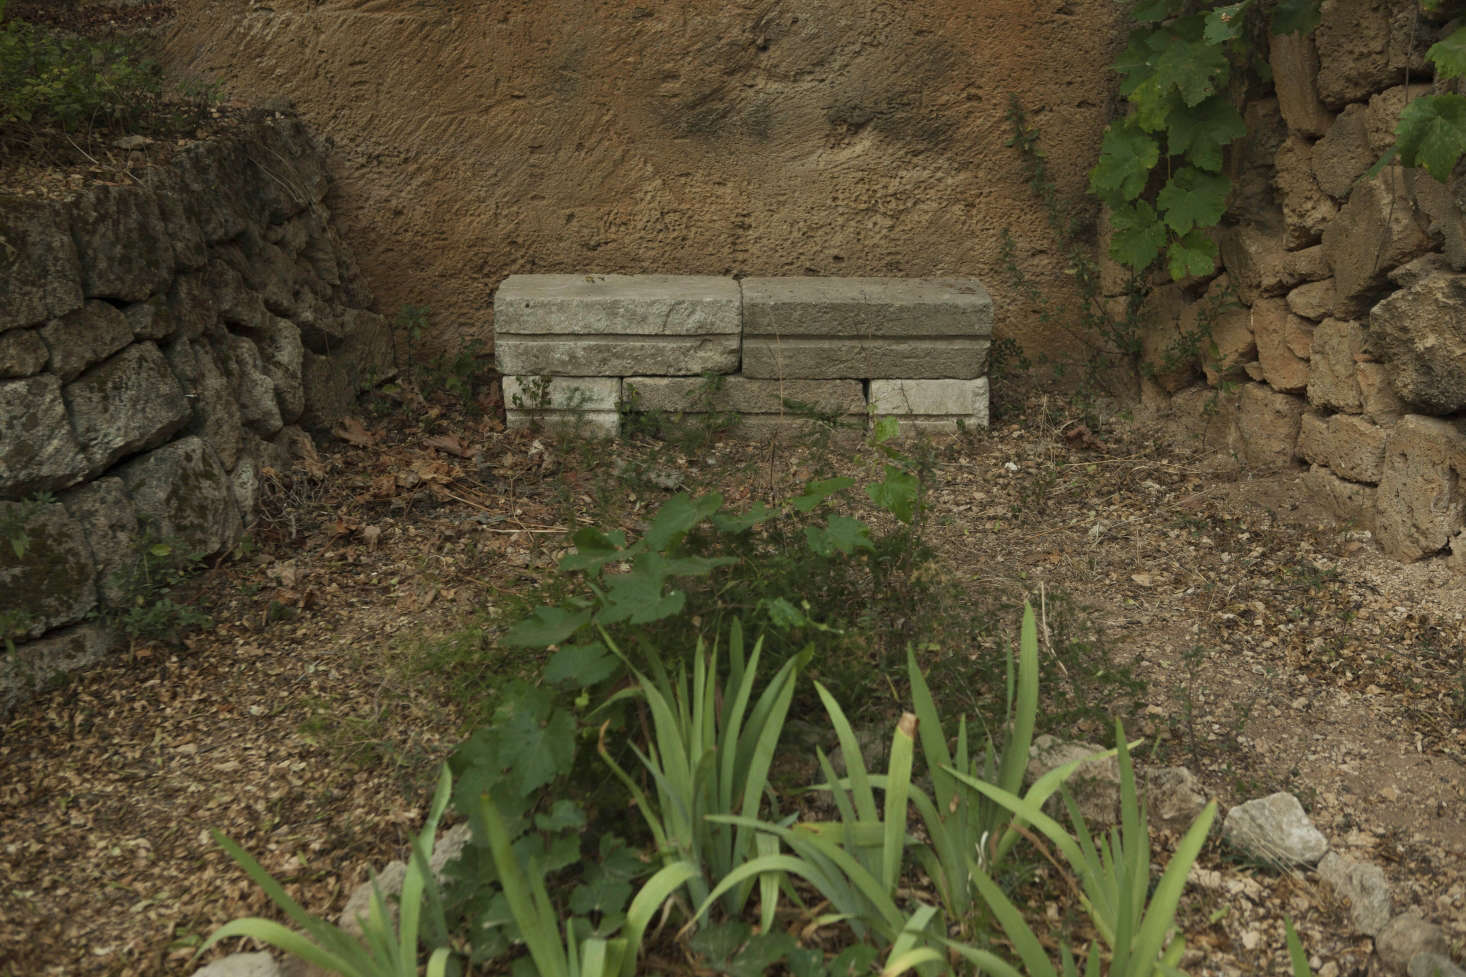 With raw materials like these, the hardscaping becomes the garden. Nonetheless, vines and irises thrive in the dry bed marked out by rough stones.